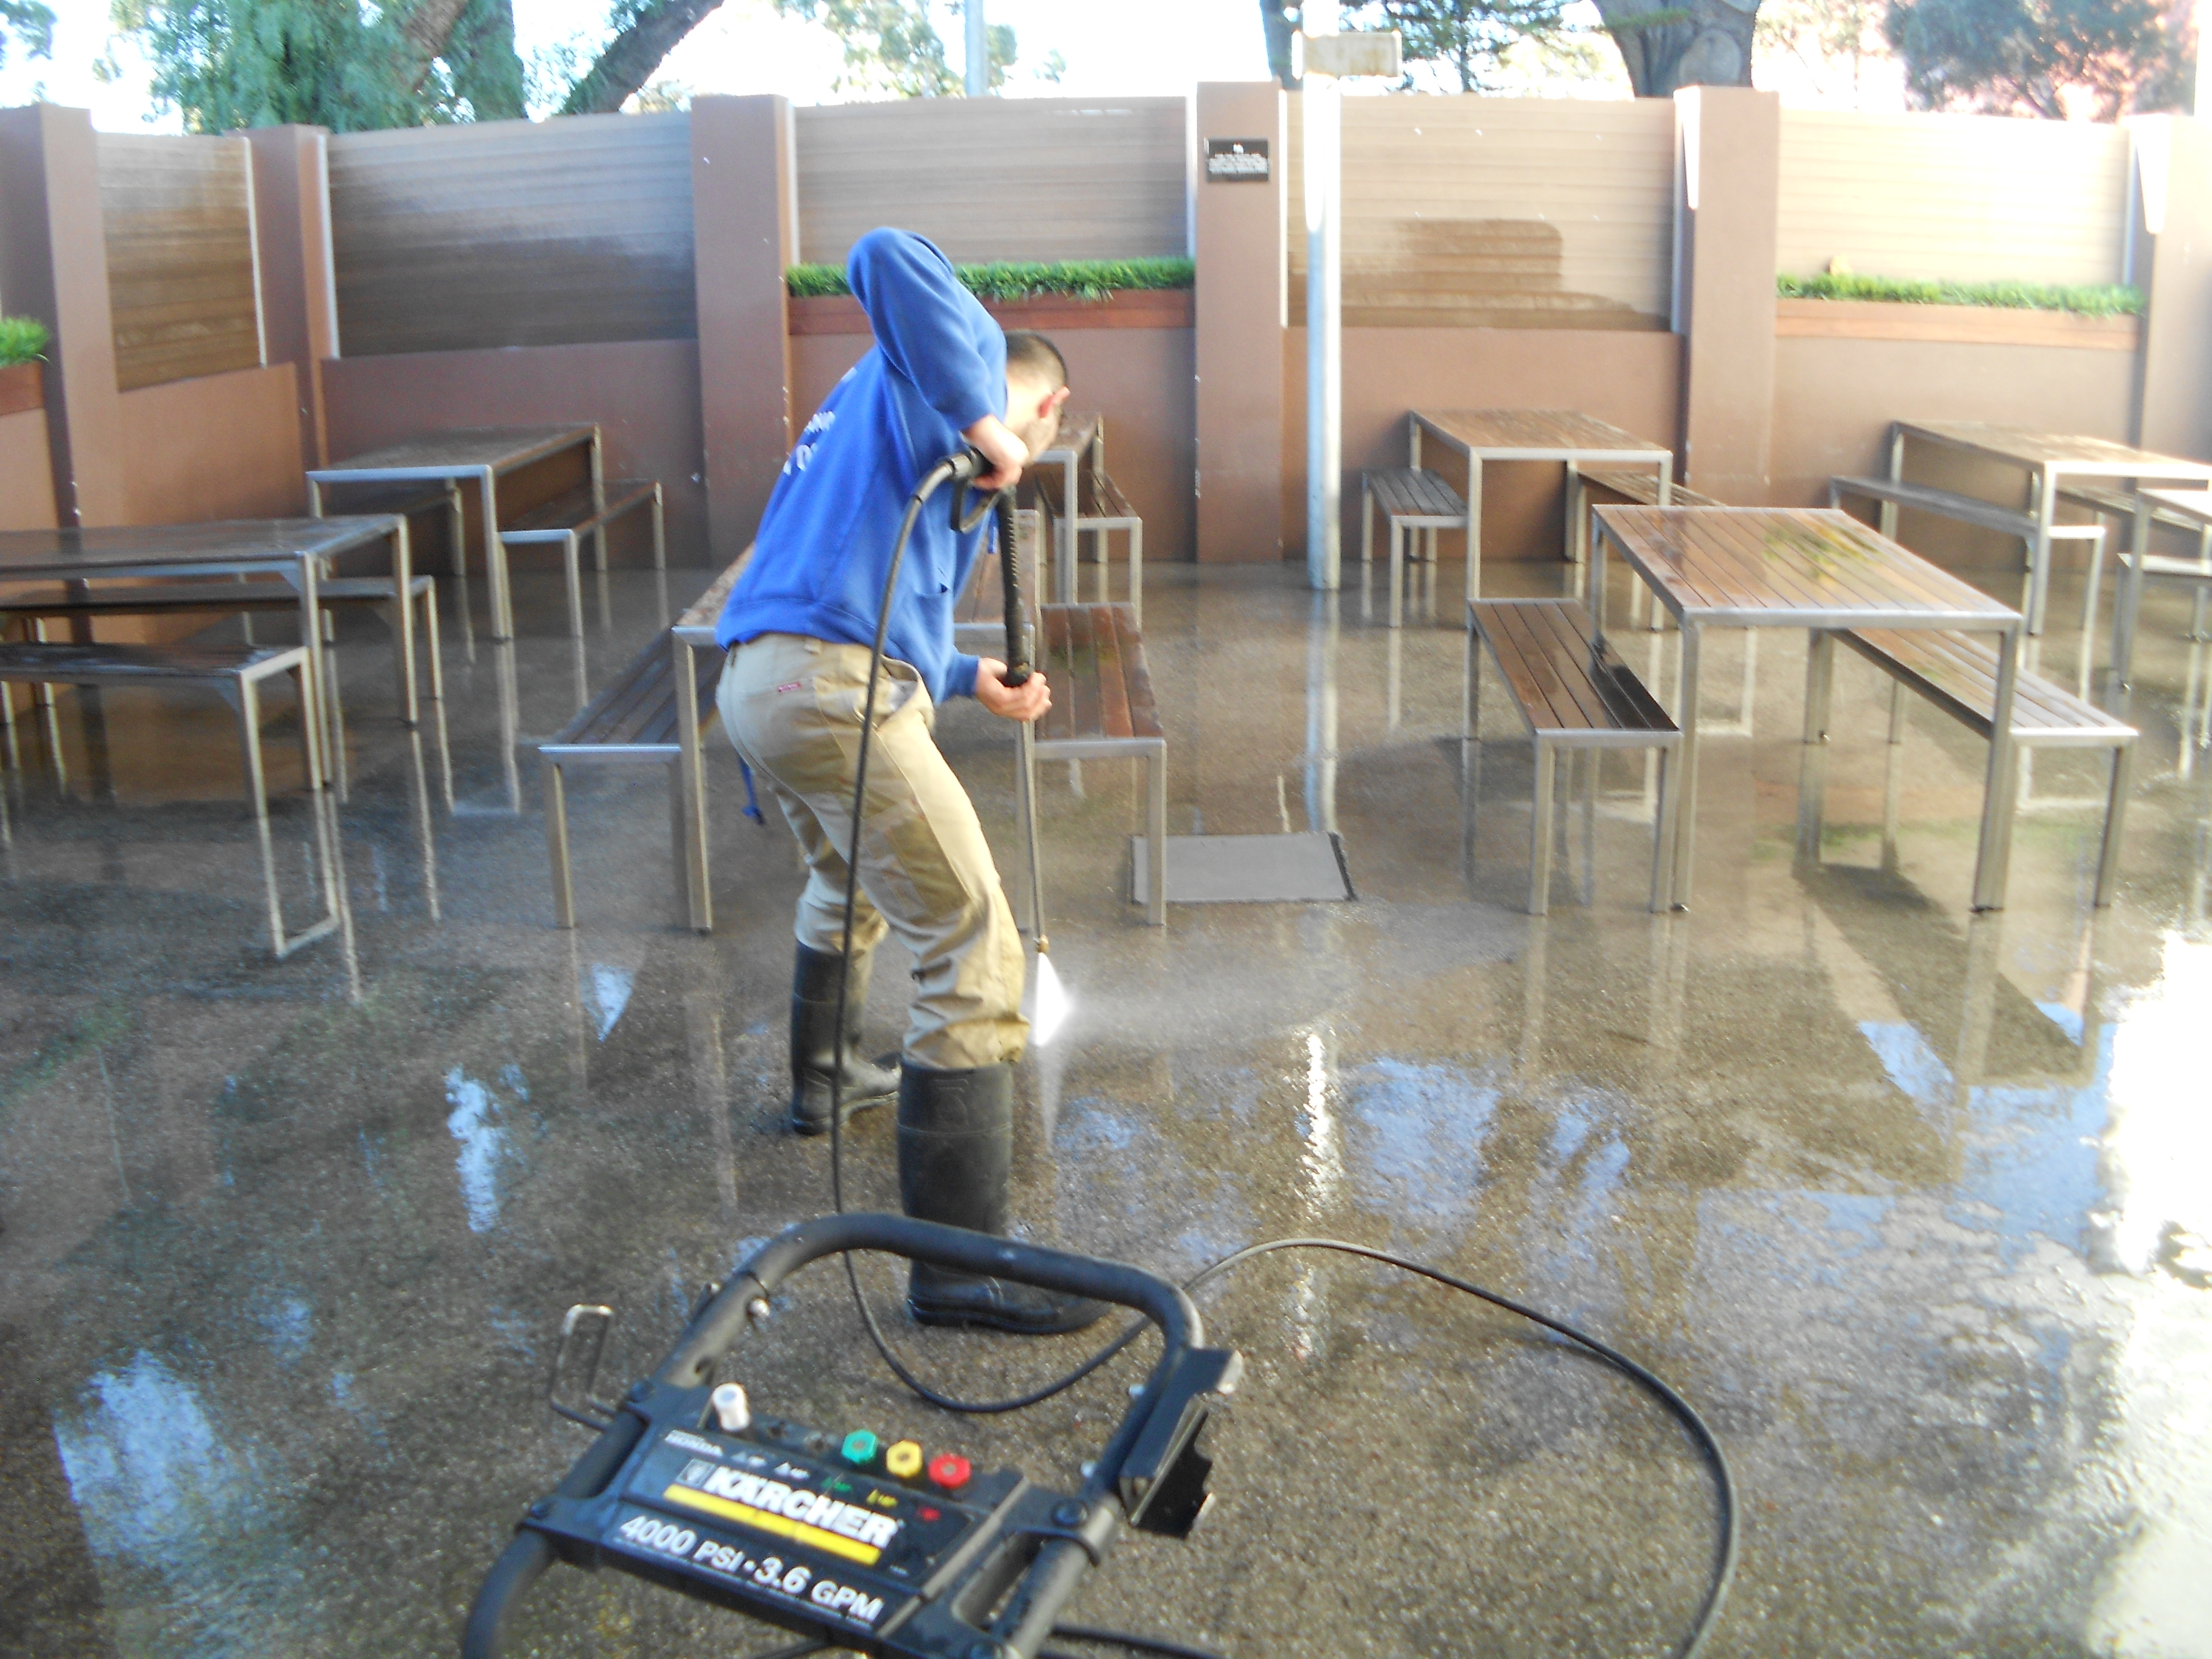 http://pristinepropertysolutions.com.au/wp-content/uploads/2014/08/commercial-cleaning.jpg